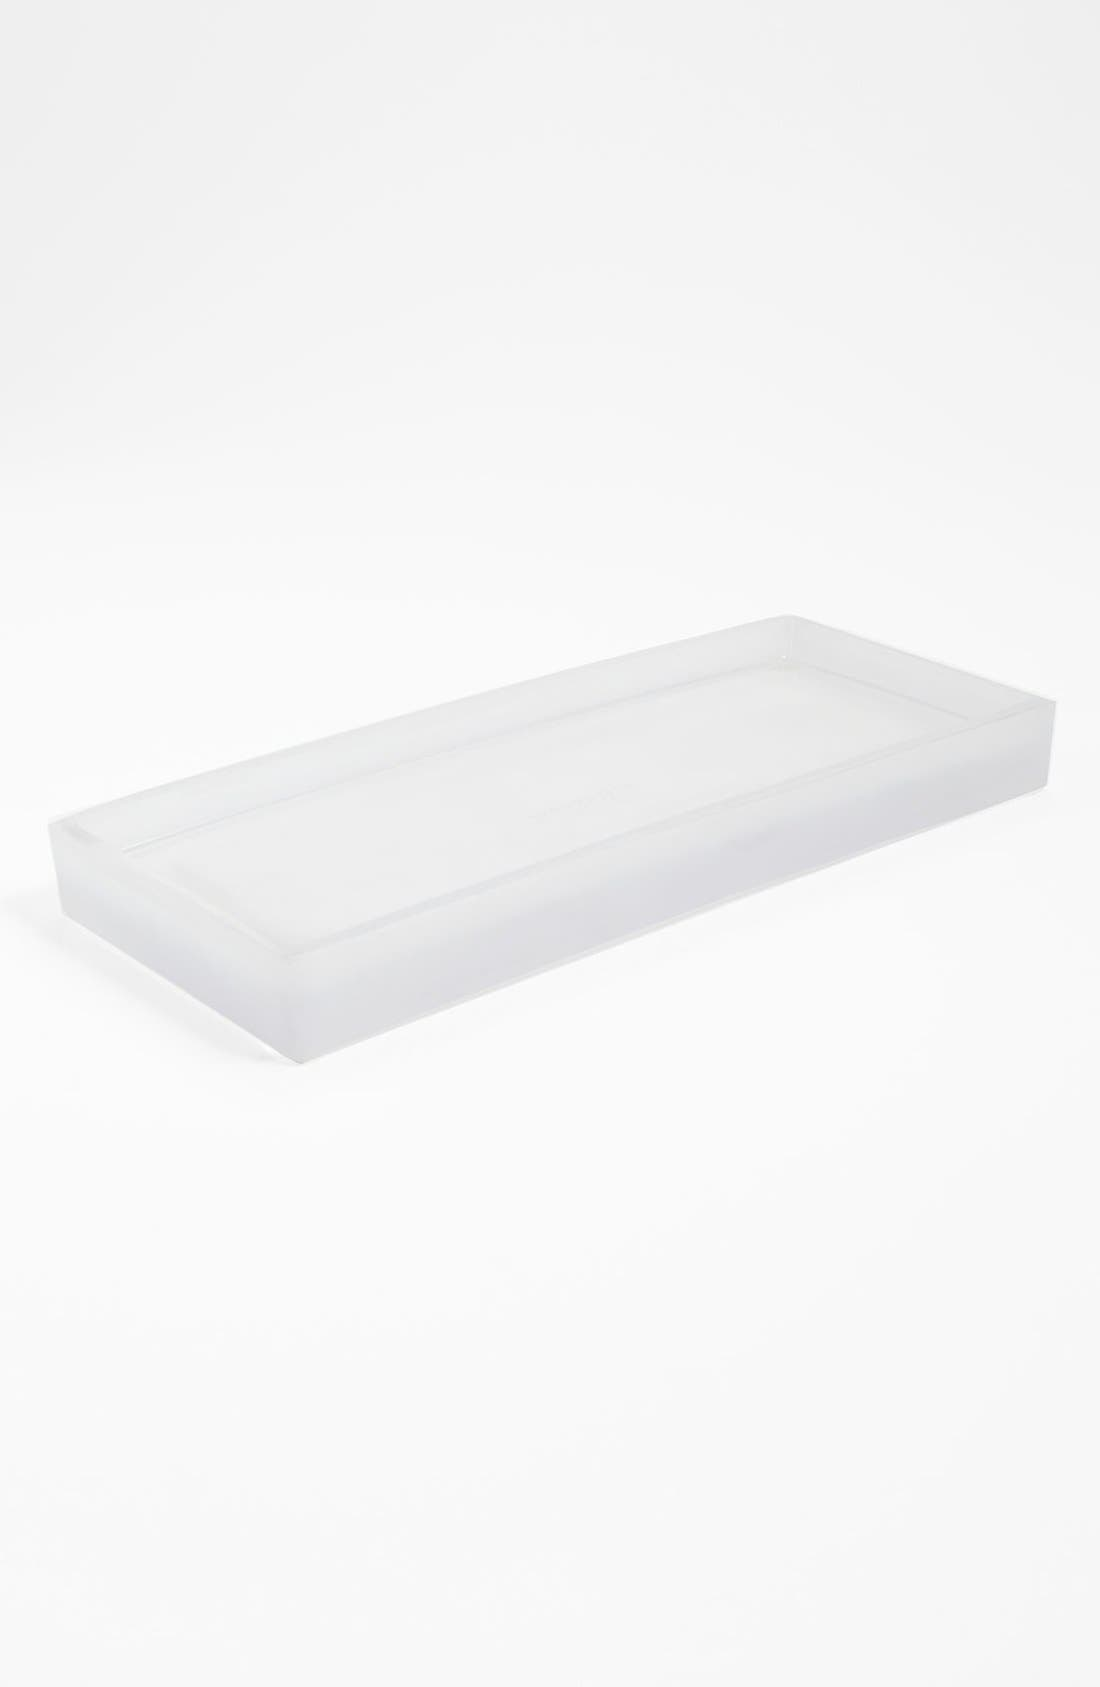 Alternate Image 1 Selected - Waterworks Studio 'Oxygen' Tray (Online Only)